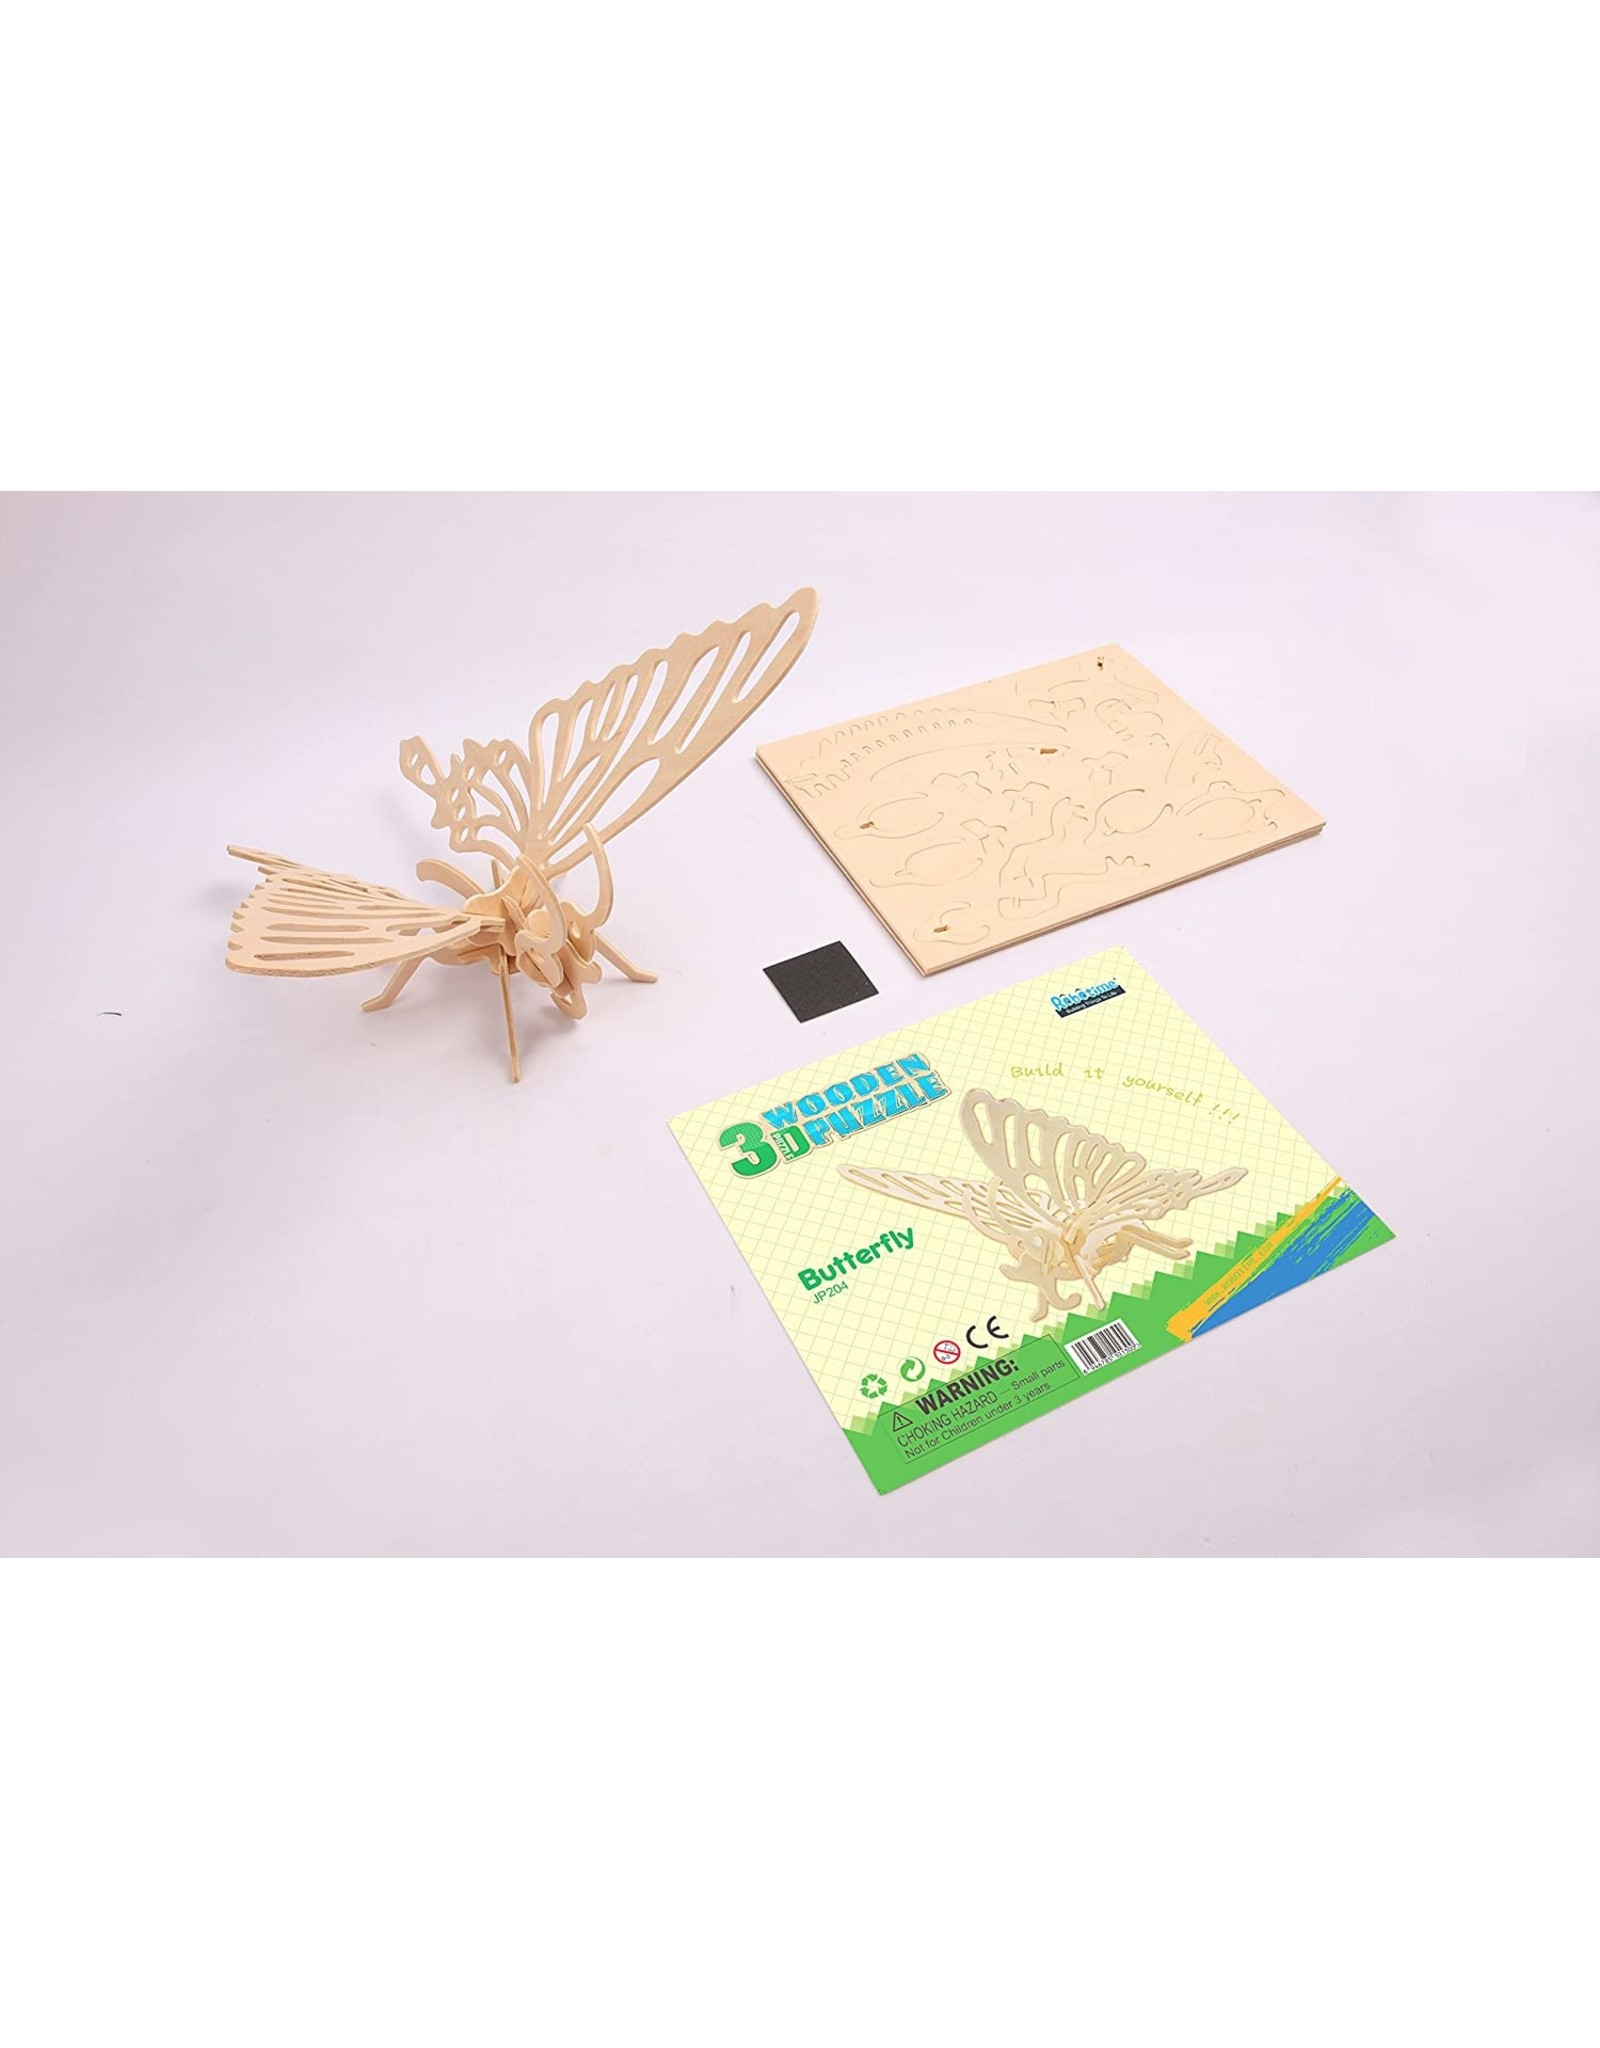 Hands Craft 3D Wooden Puzzle - Butterfly